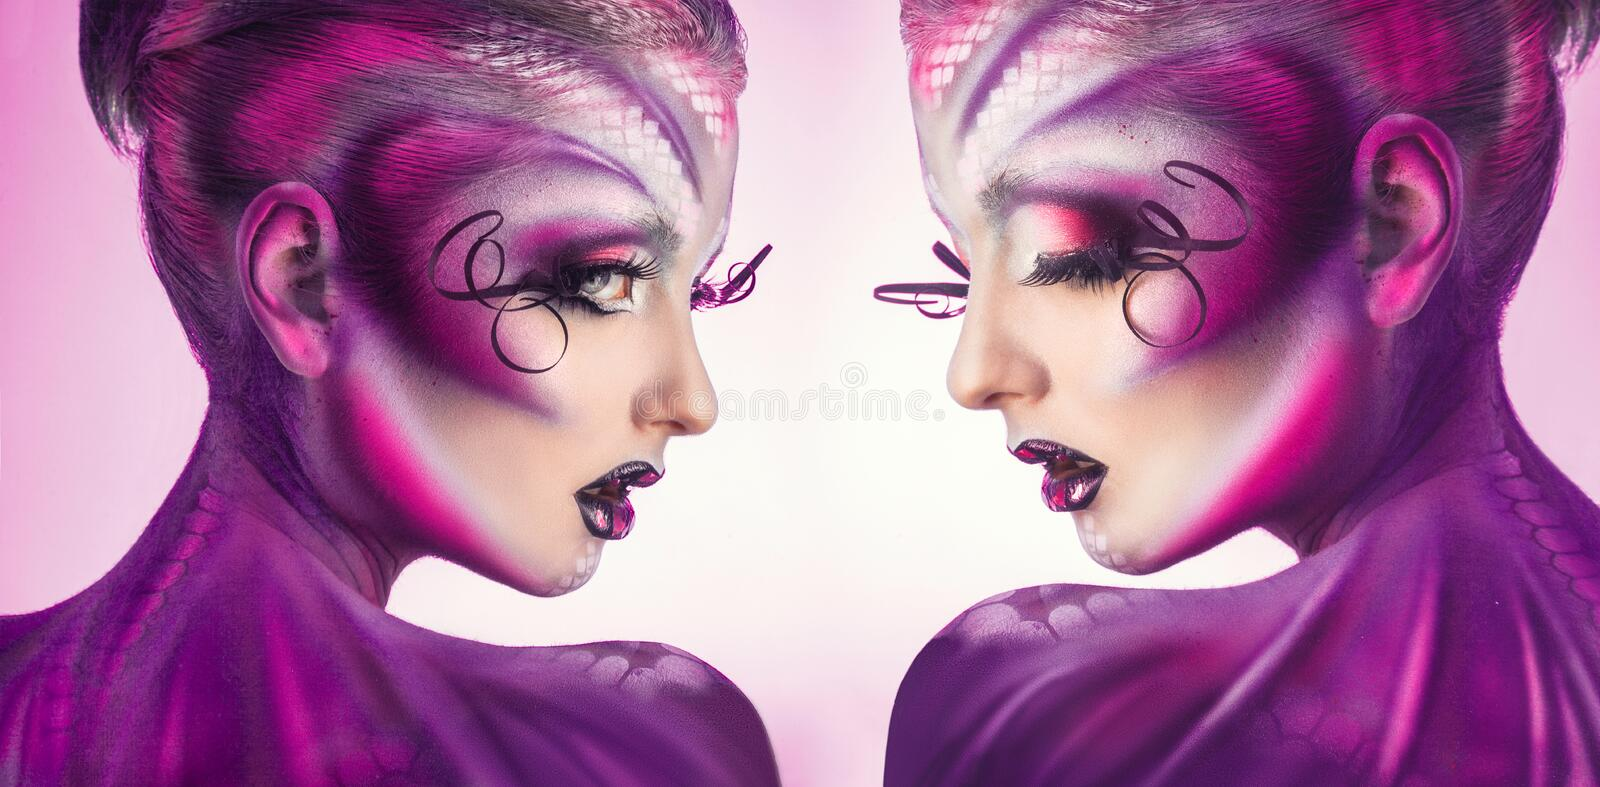 Horizontal photo of two women with creative magenta body art. Horizontal photo of two woman with creative magenta body art in studio royalty free stock photography